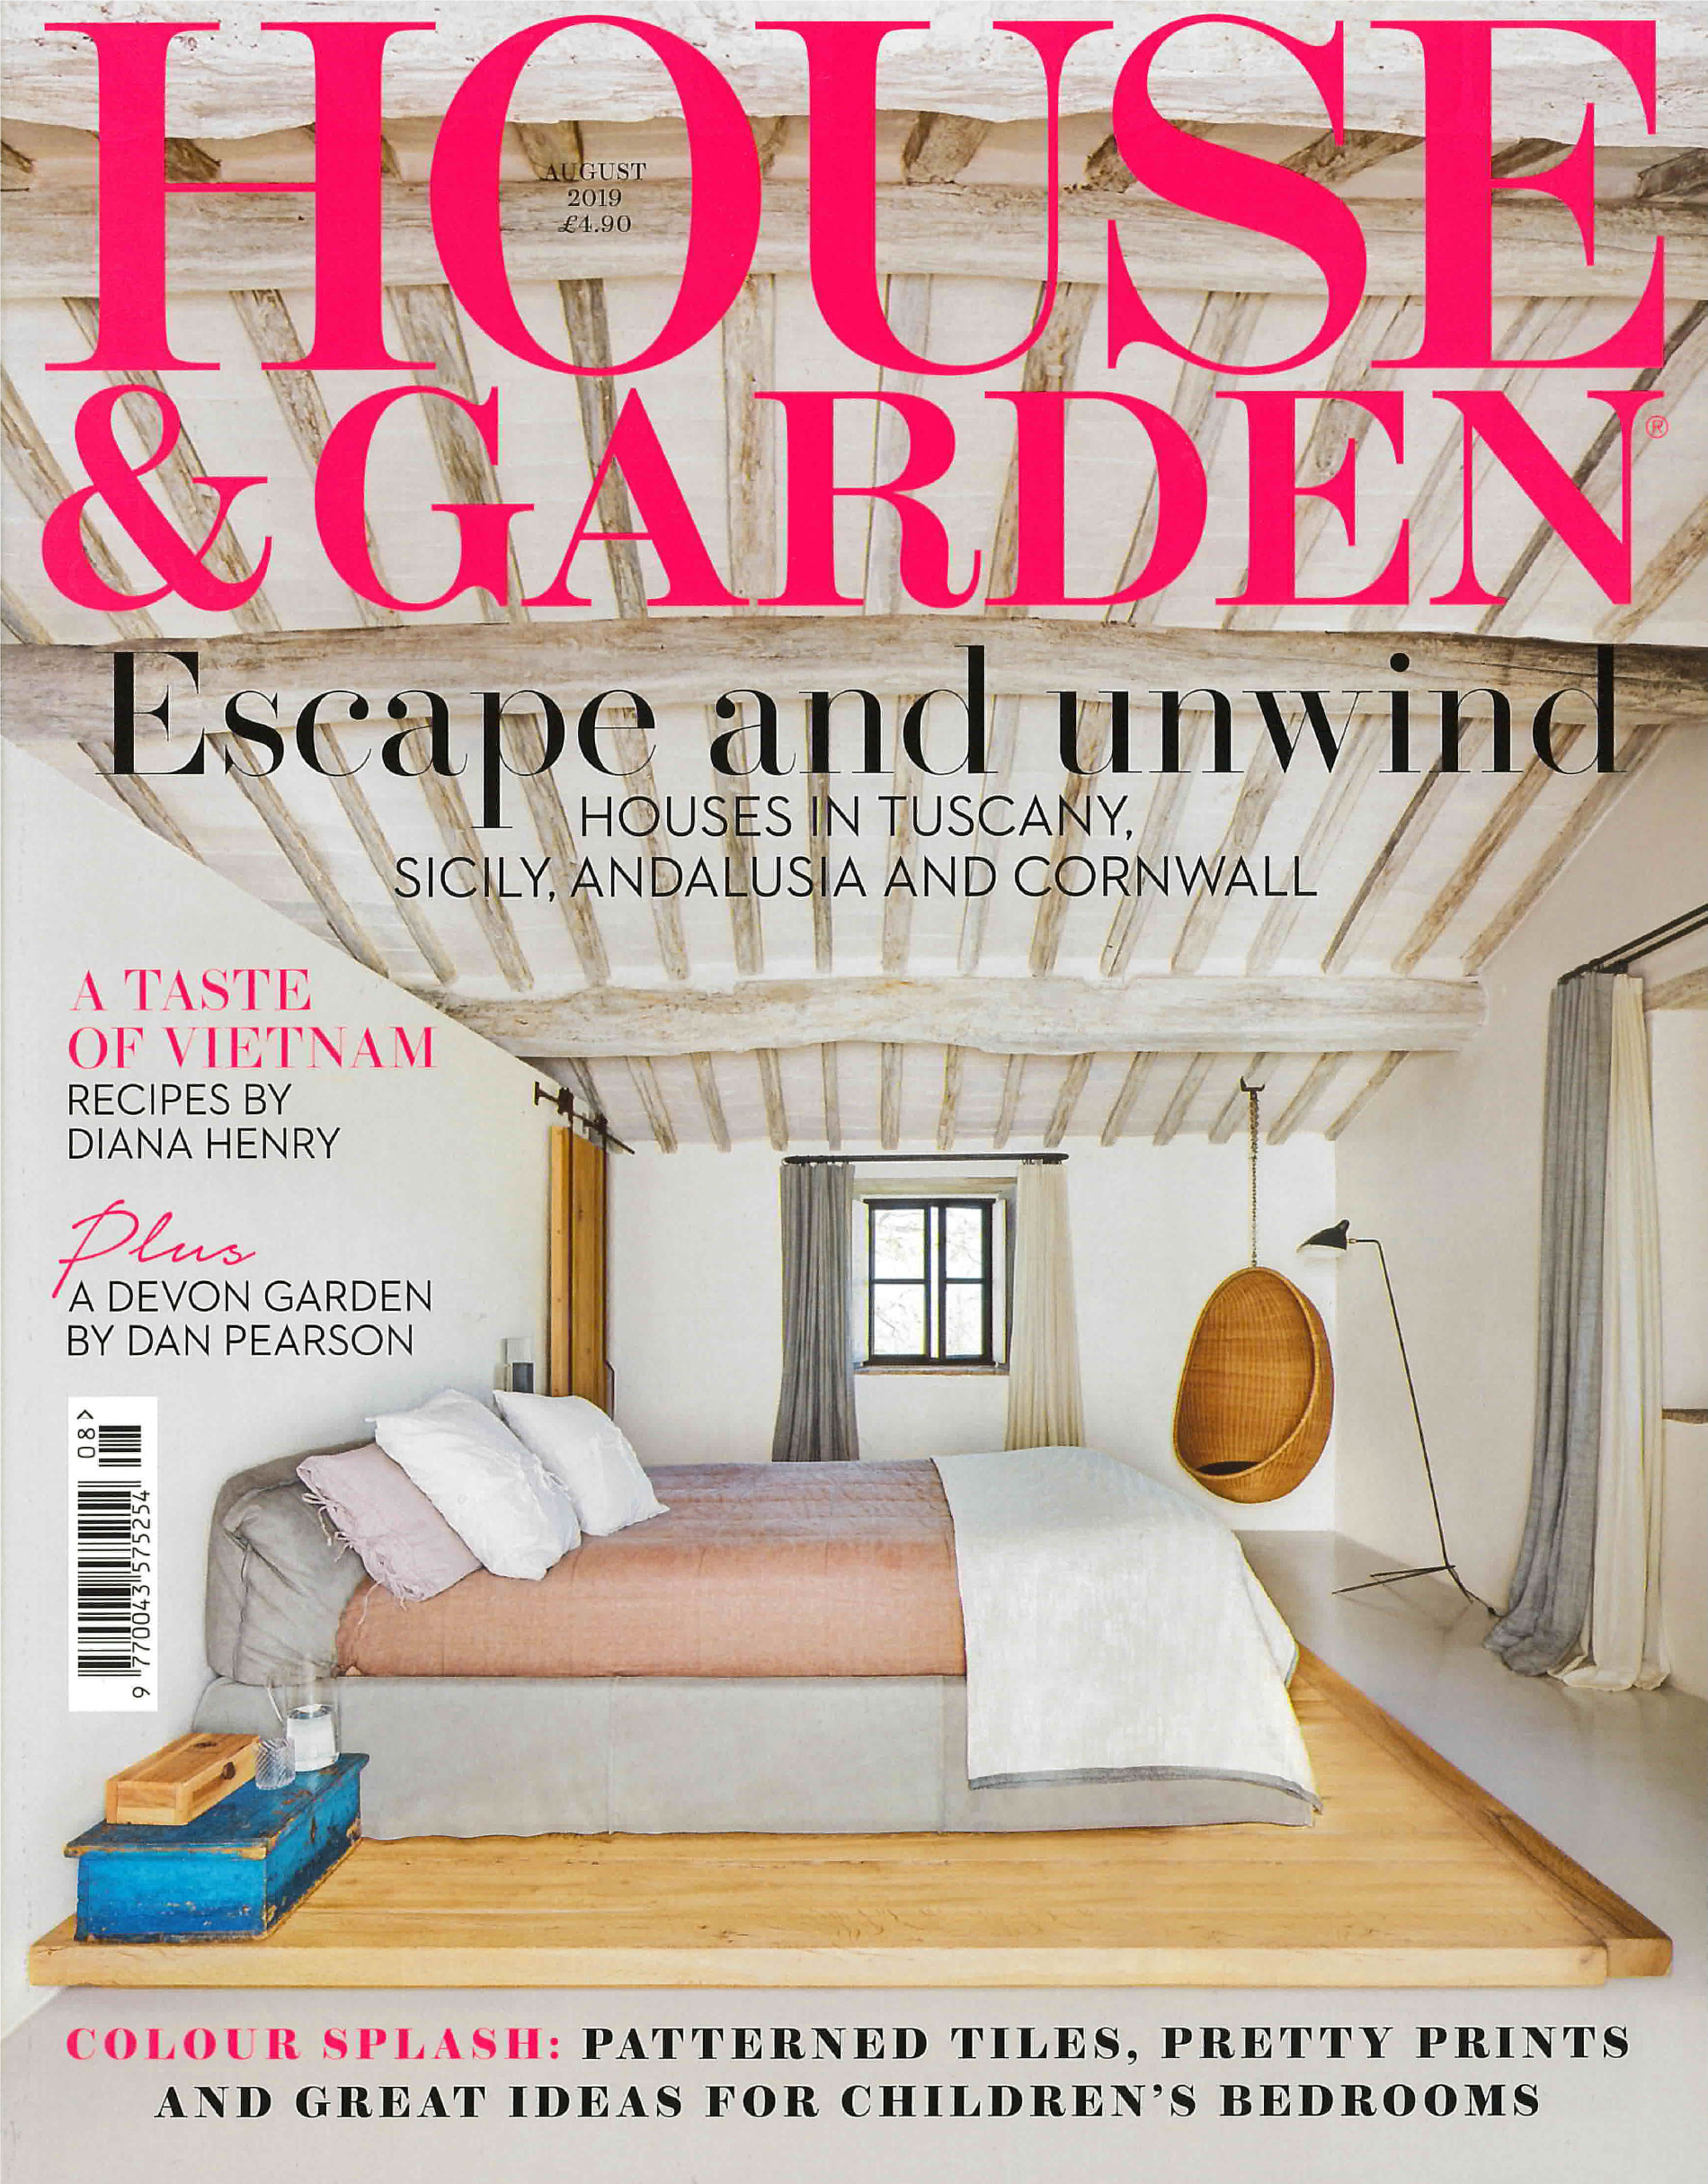 House and Garden August Edition